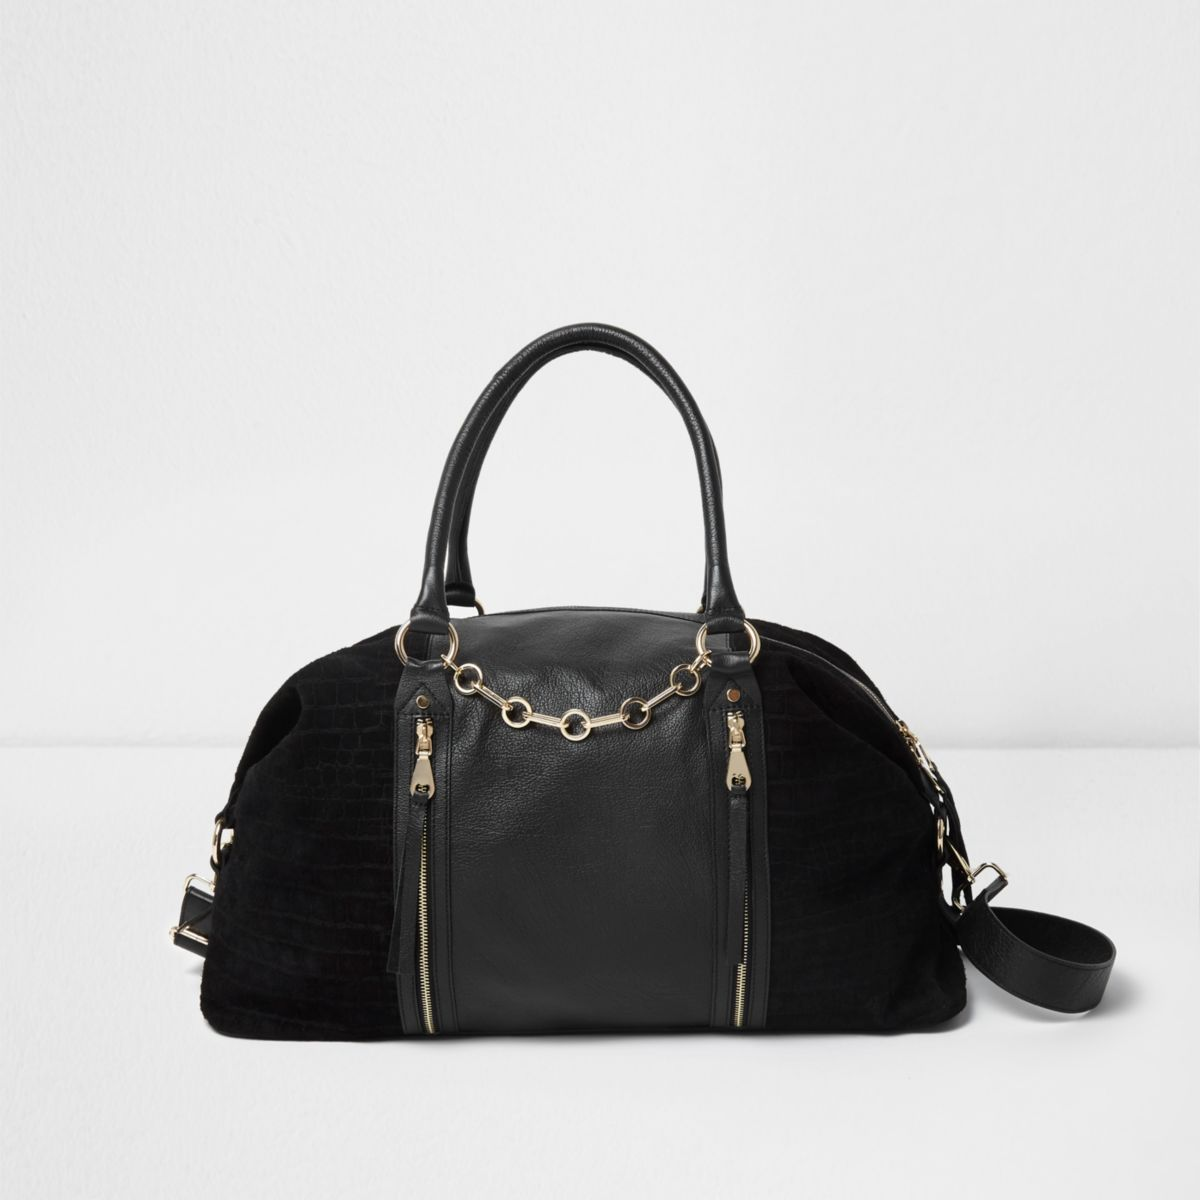 Black suede and leather weekend bag